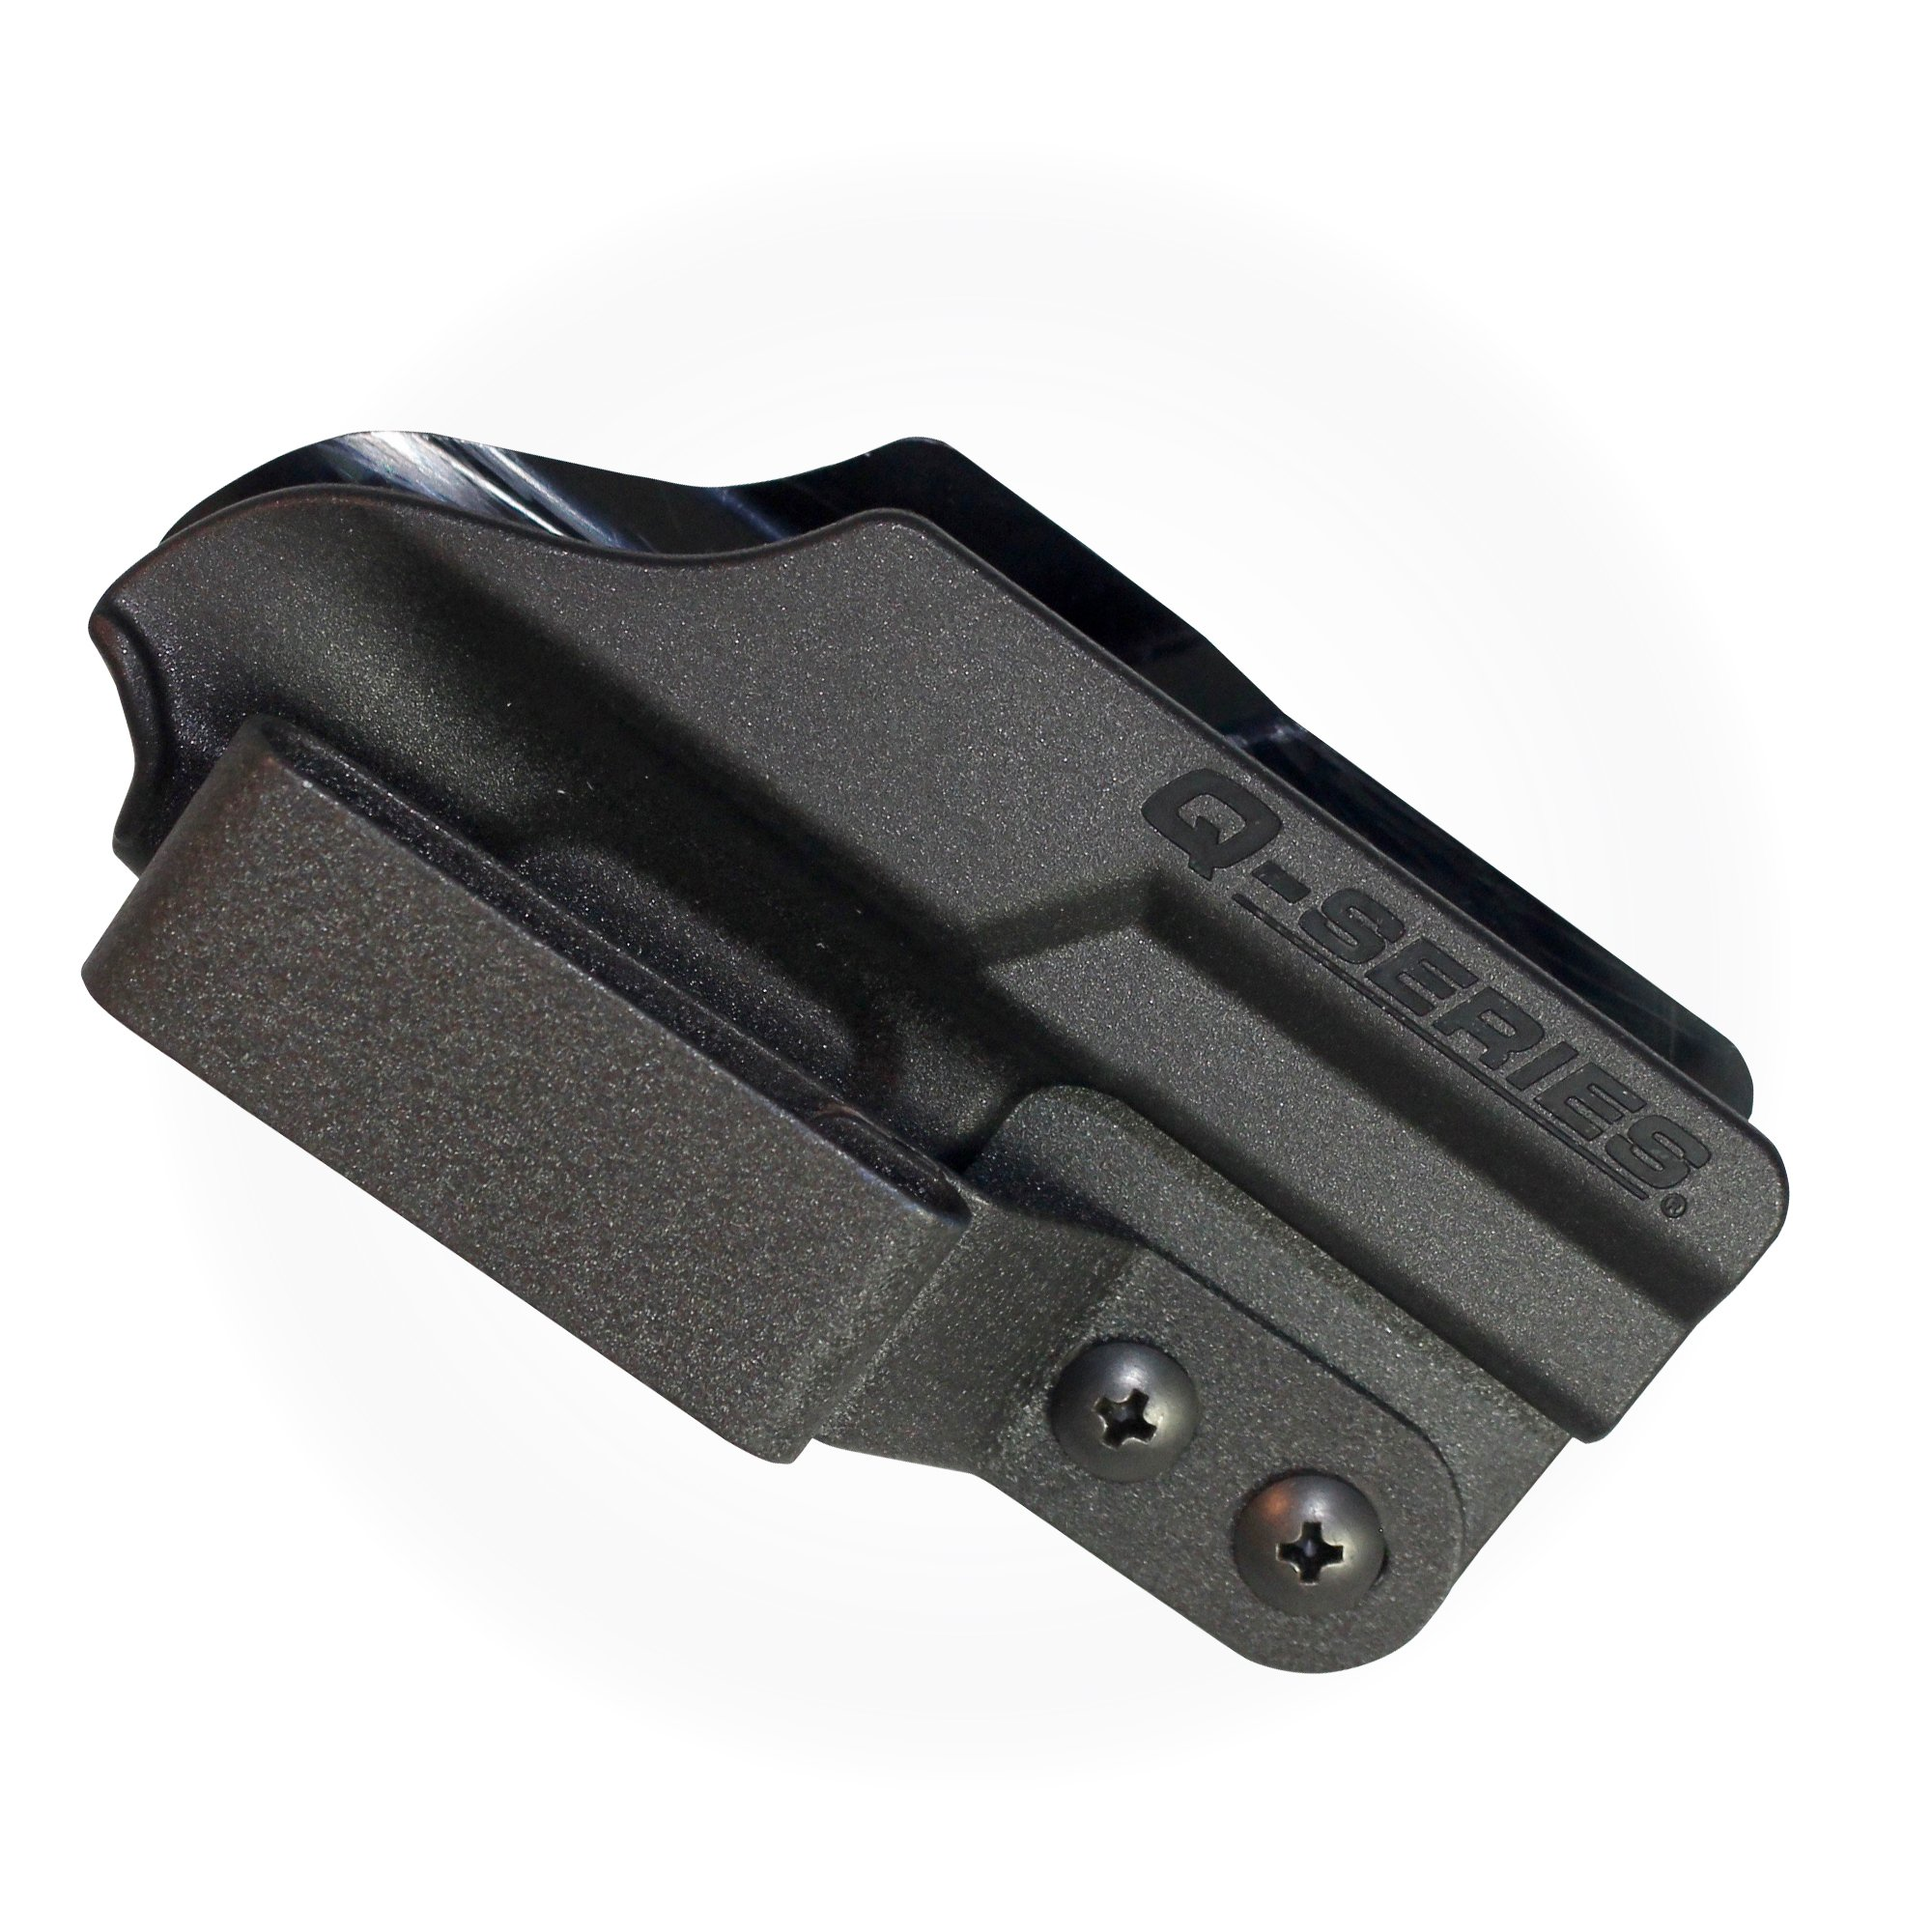 Q-Series Stealth Gun Holsters - Minimalist Concealed Carry Holster for Pistols by Q-Series